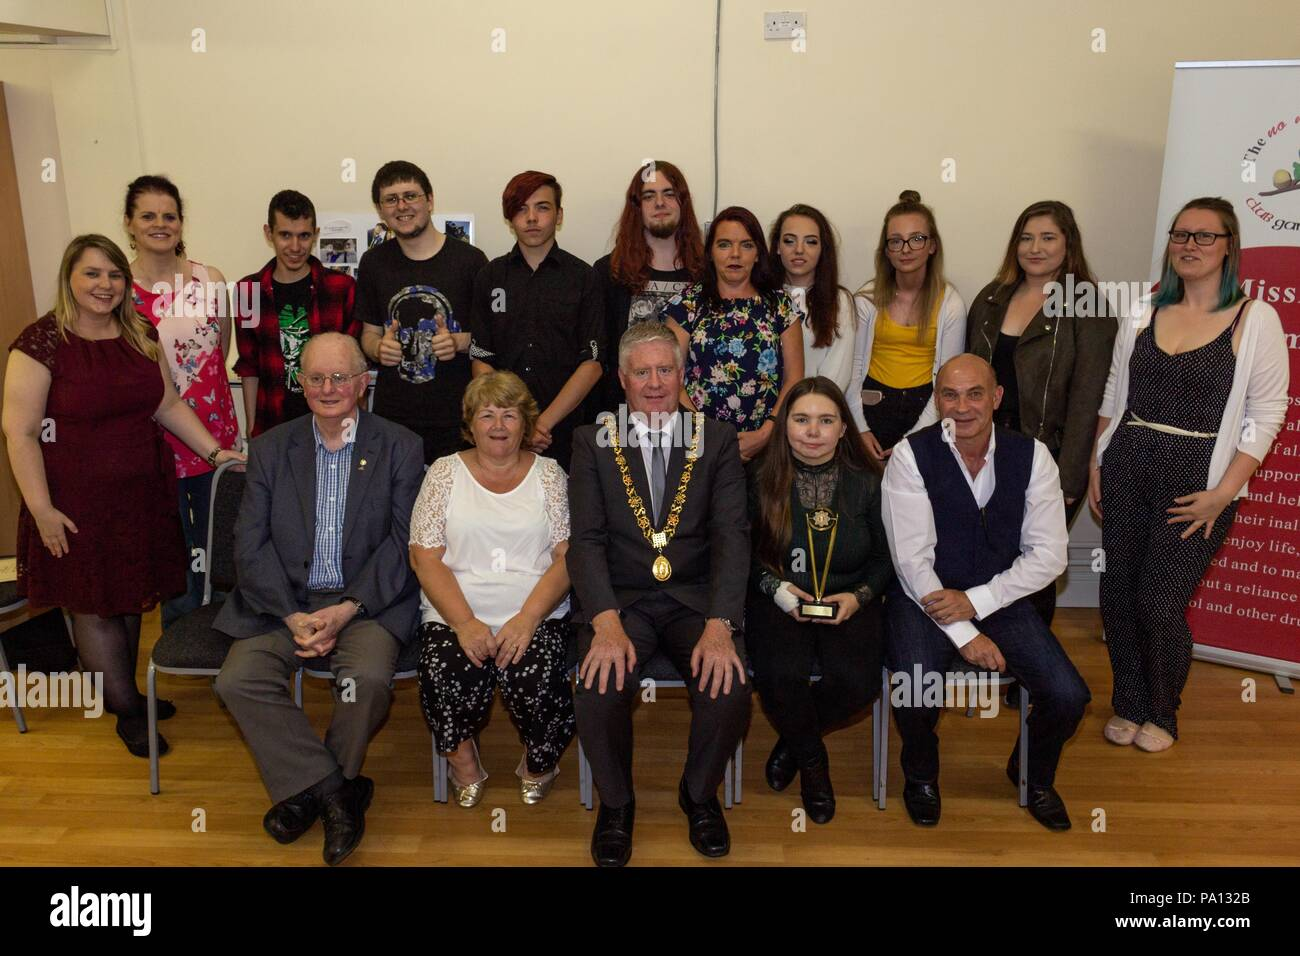 Cork City, Ireland. 19th July, 2018. Tonight St Josephs No Name Club met for their annual graduation ceromoney in St Josephs Community Centre, Mayfield. Each Host/Hostess were awarded a certificate for their complation of the year by Carrole Goulding and the Lord Mayor of Cork, Mick Finn. No Name! Clubs respect the dignity, value and uniqueness of all young people by supporting, advocating and helping to safeguard their right to enjoy life, feel respected and to mature without a reliance on alcohol and other drugs. Credit: Damian Coleman/Alamy Live News - Stock Image